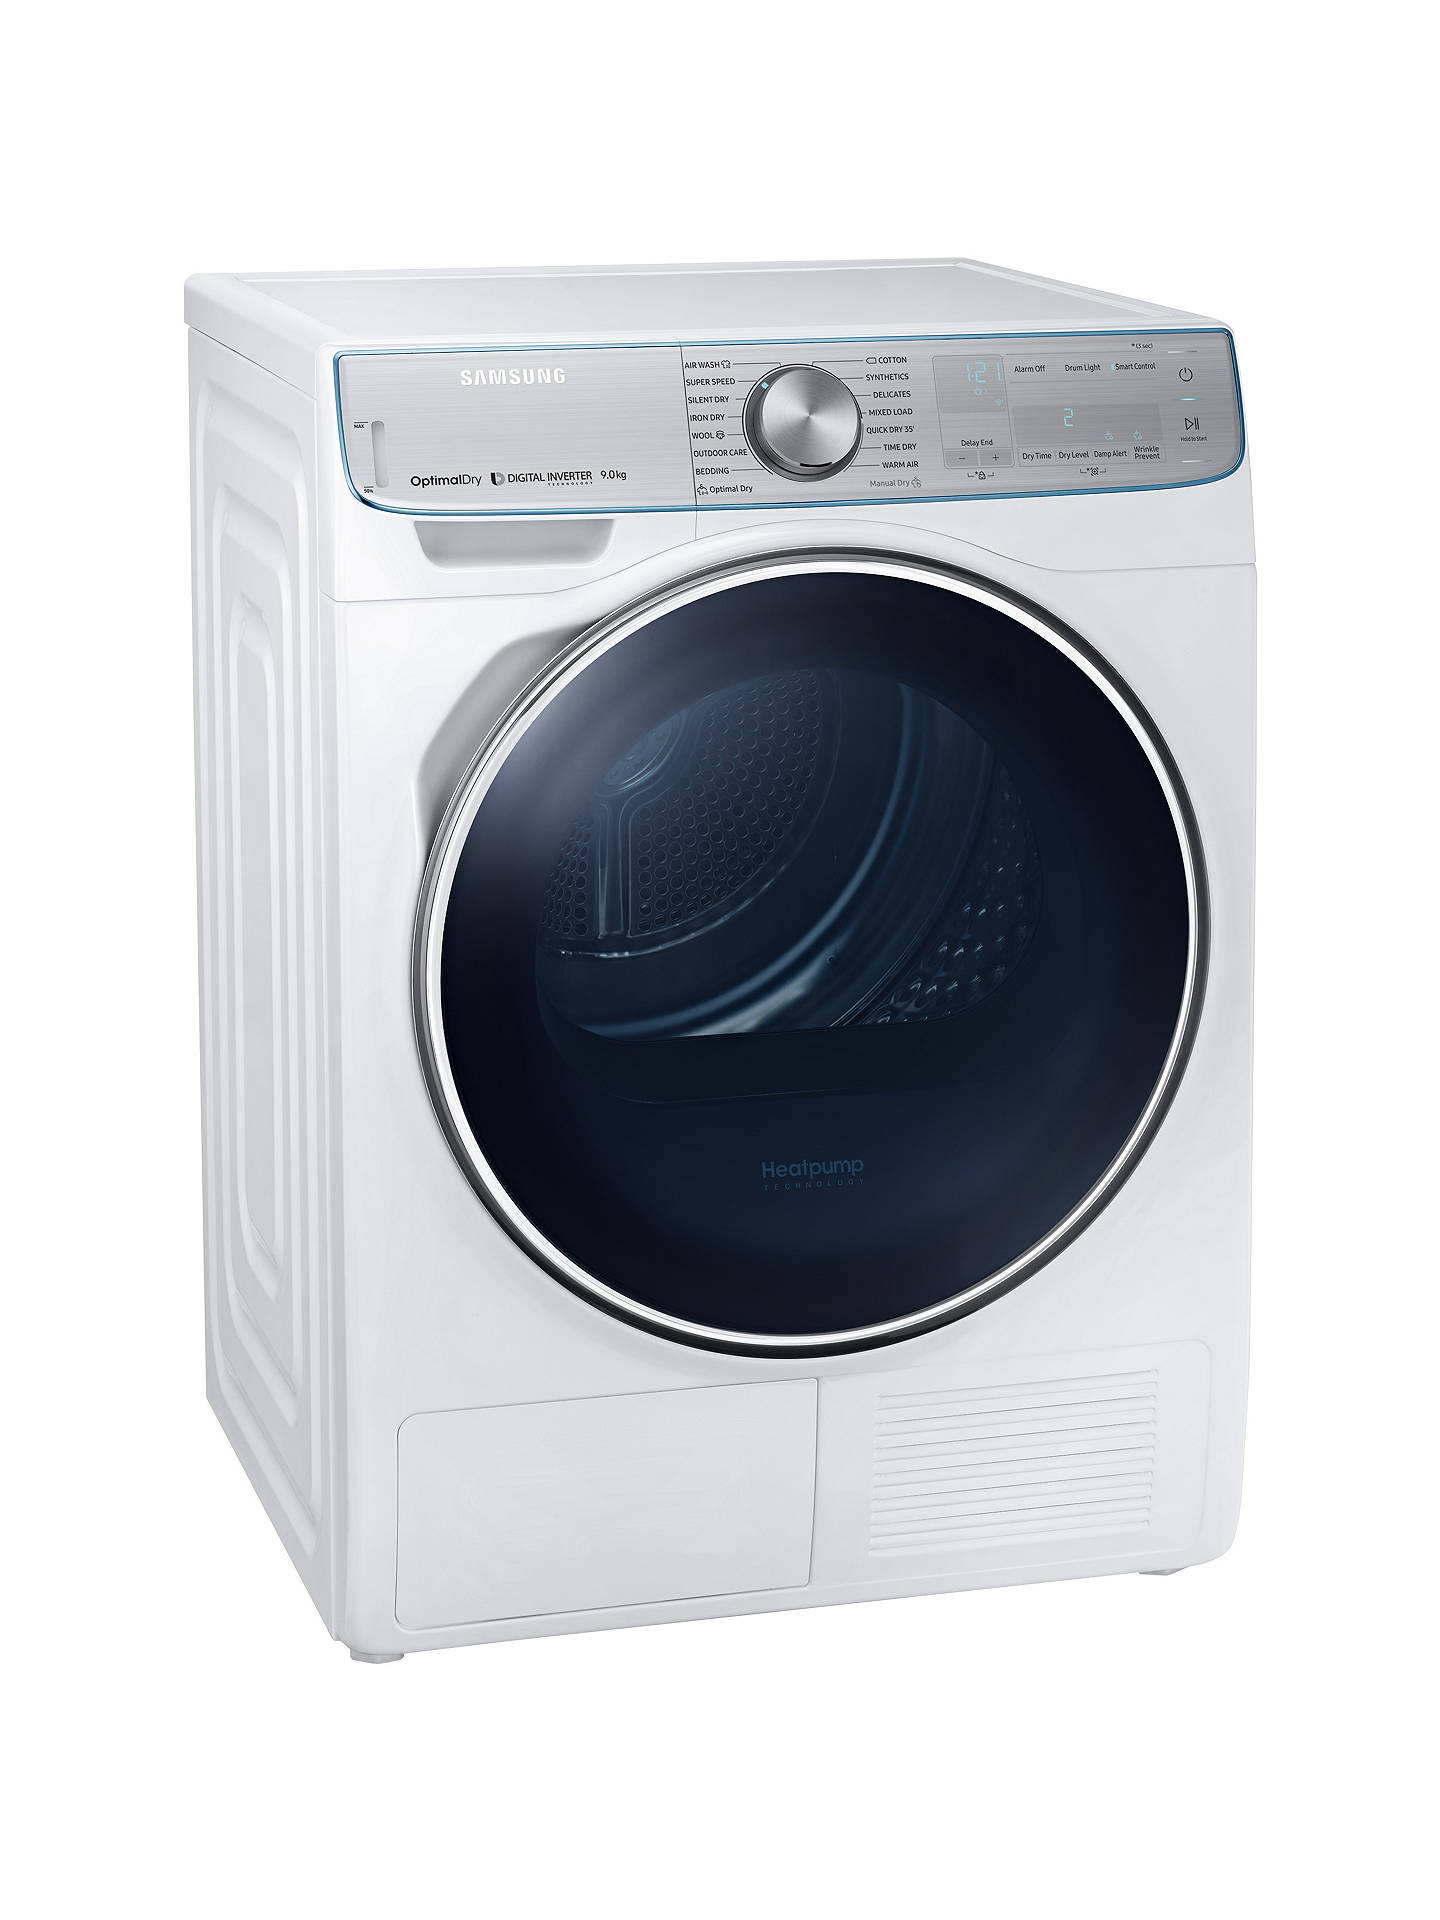 BuySamsung DV90N8289AW/EU Freestanding Heat Pump Tumble Dryer, 9kg Load, A+++ Energy Rating, White Online at johnlewis.com